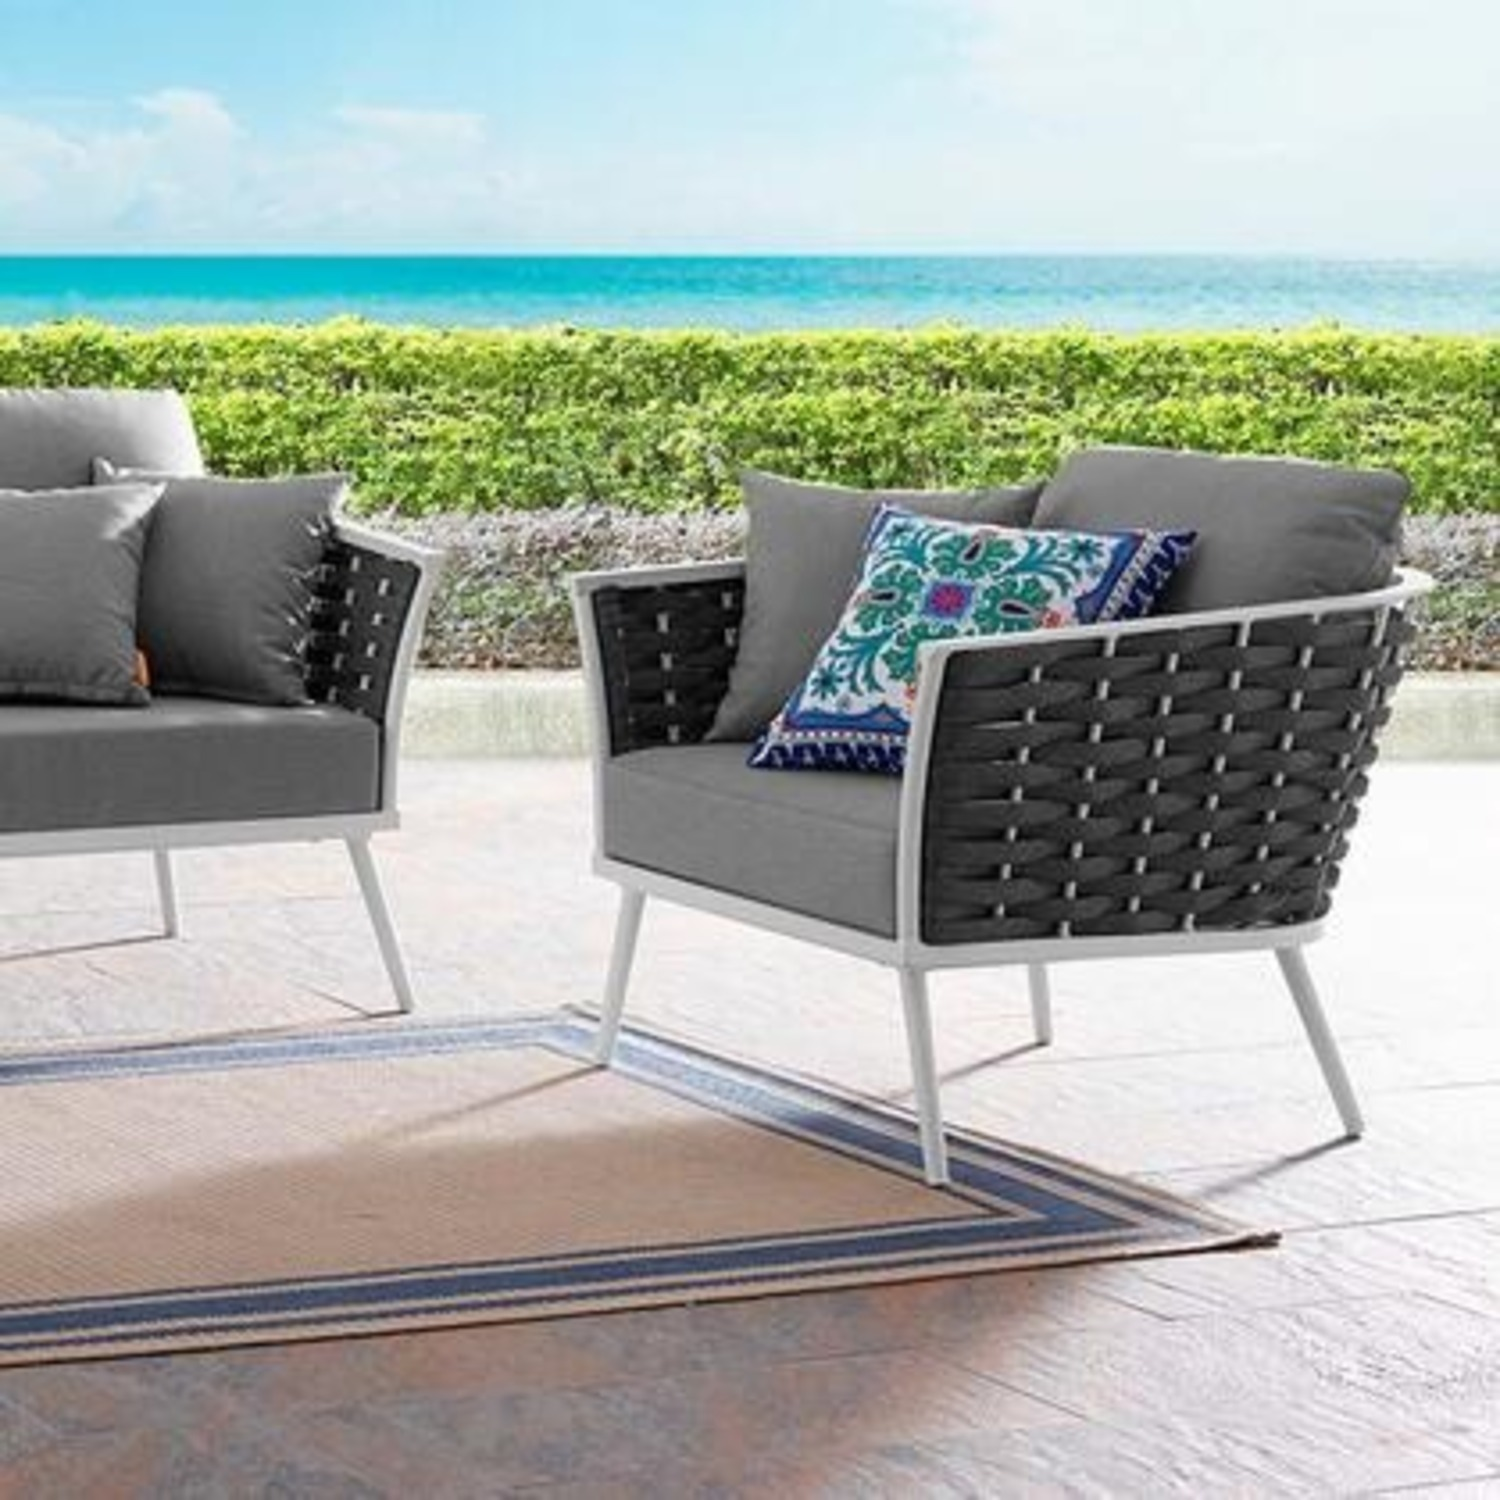 Outdoor Armchair In Gray Fabric W/ Woven Frame - image-5